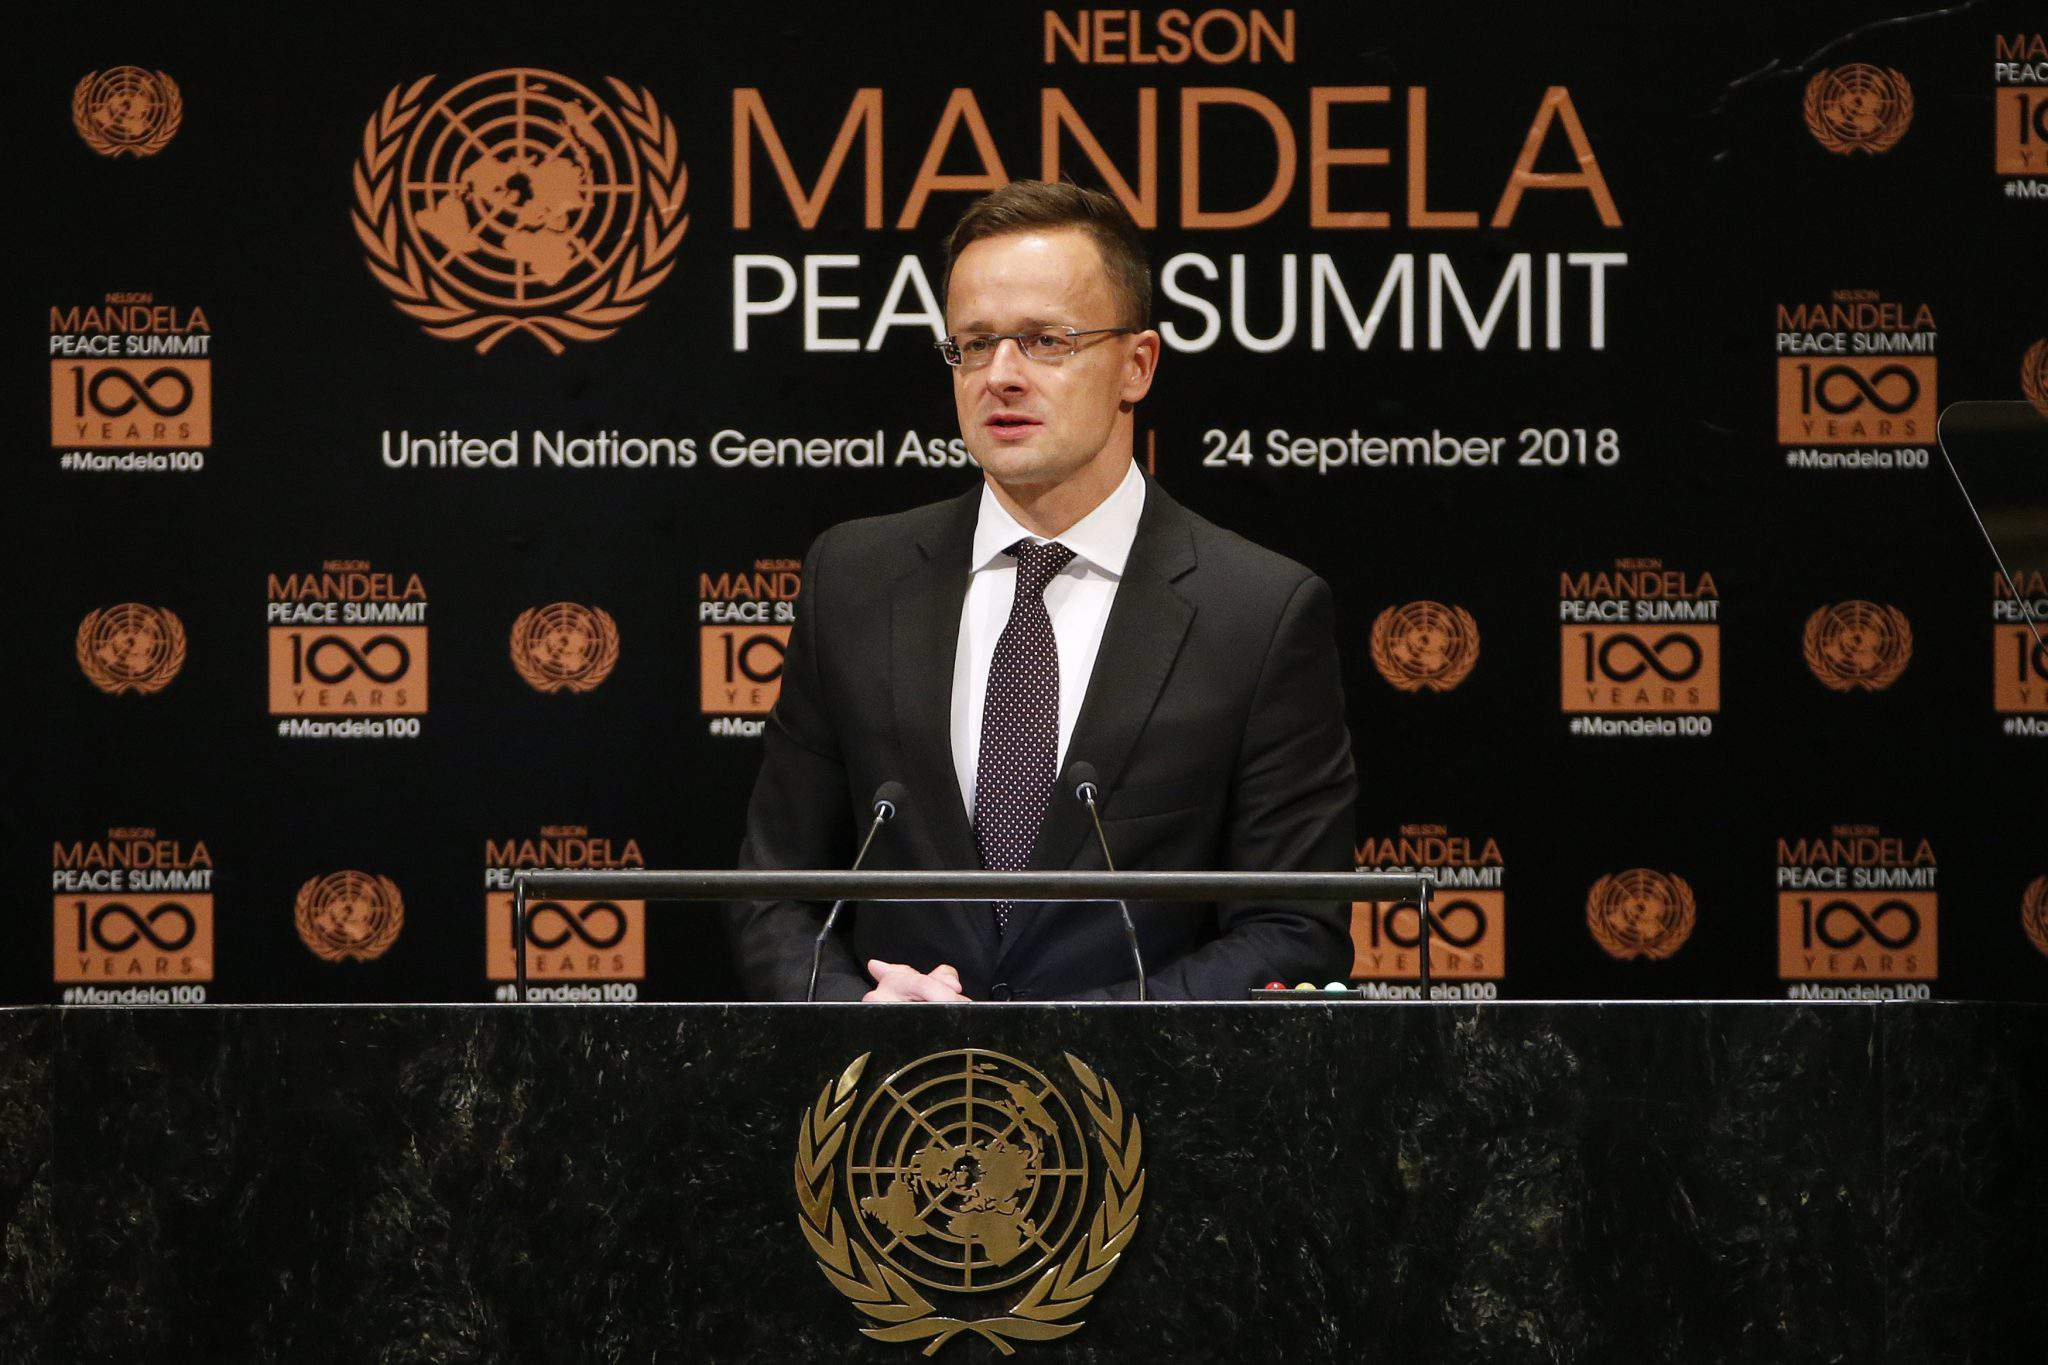 Foreign minister Mandela Peace Summit